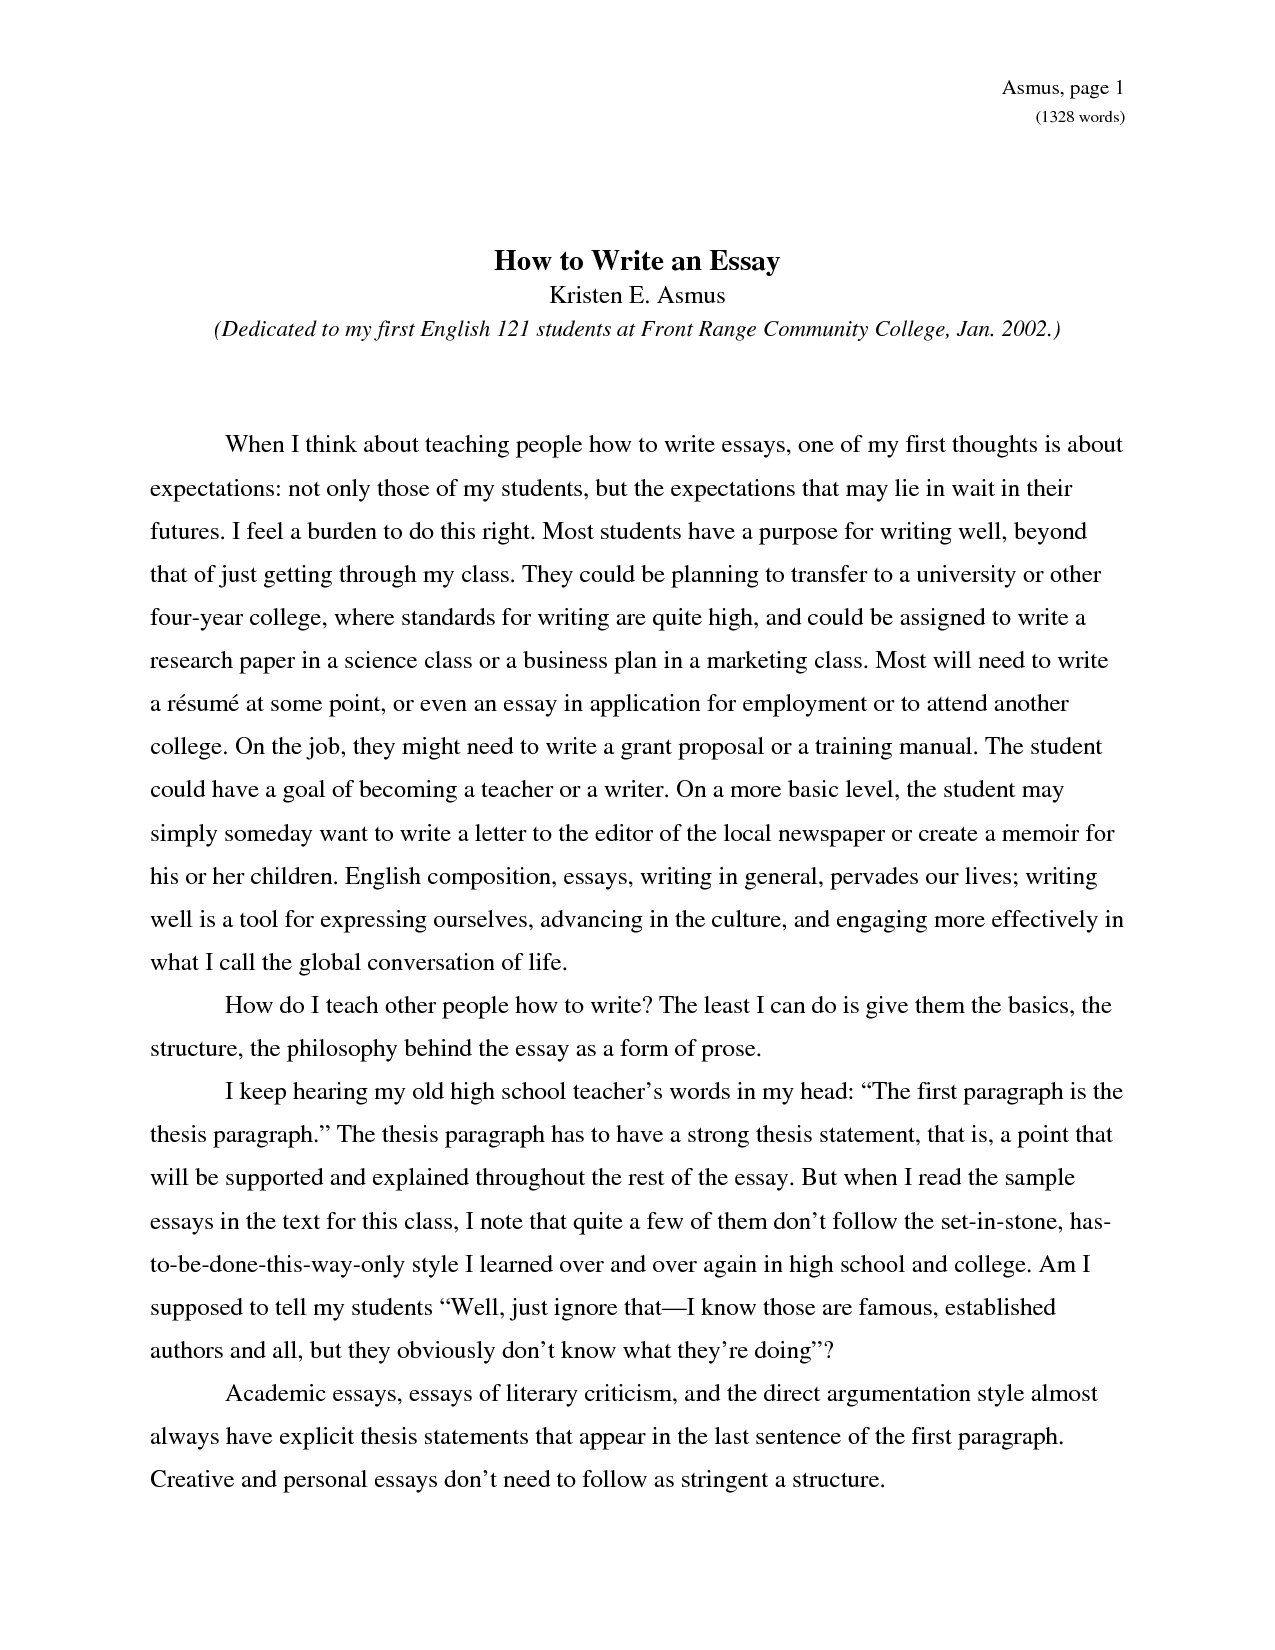 How to edit an essay do write